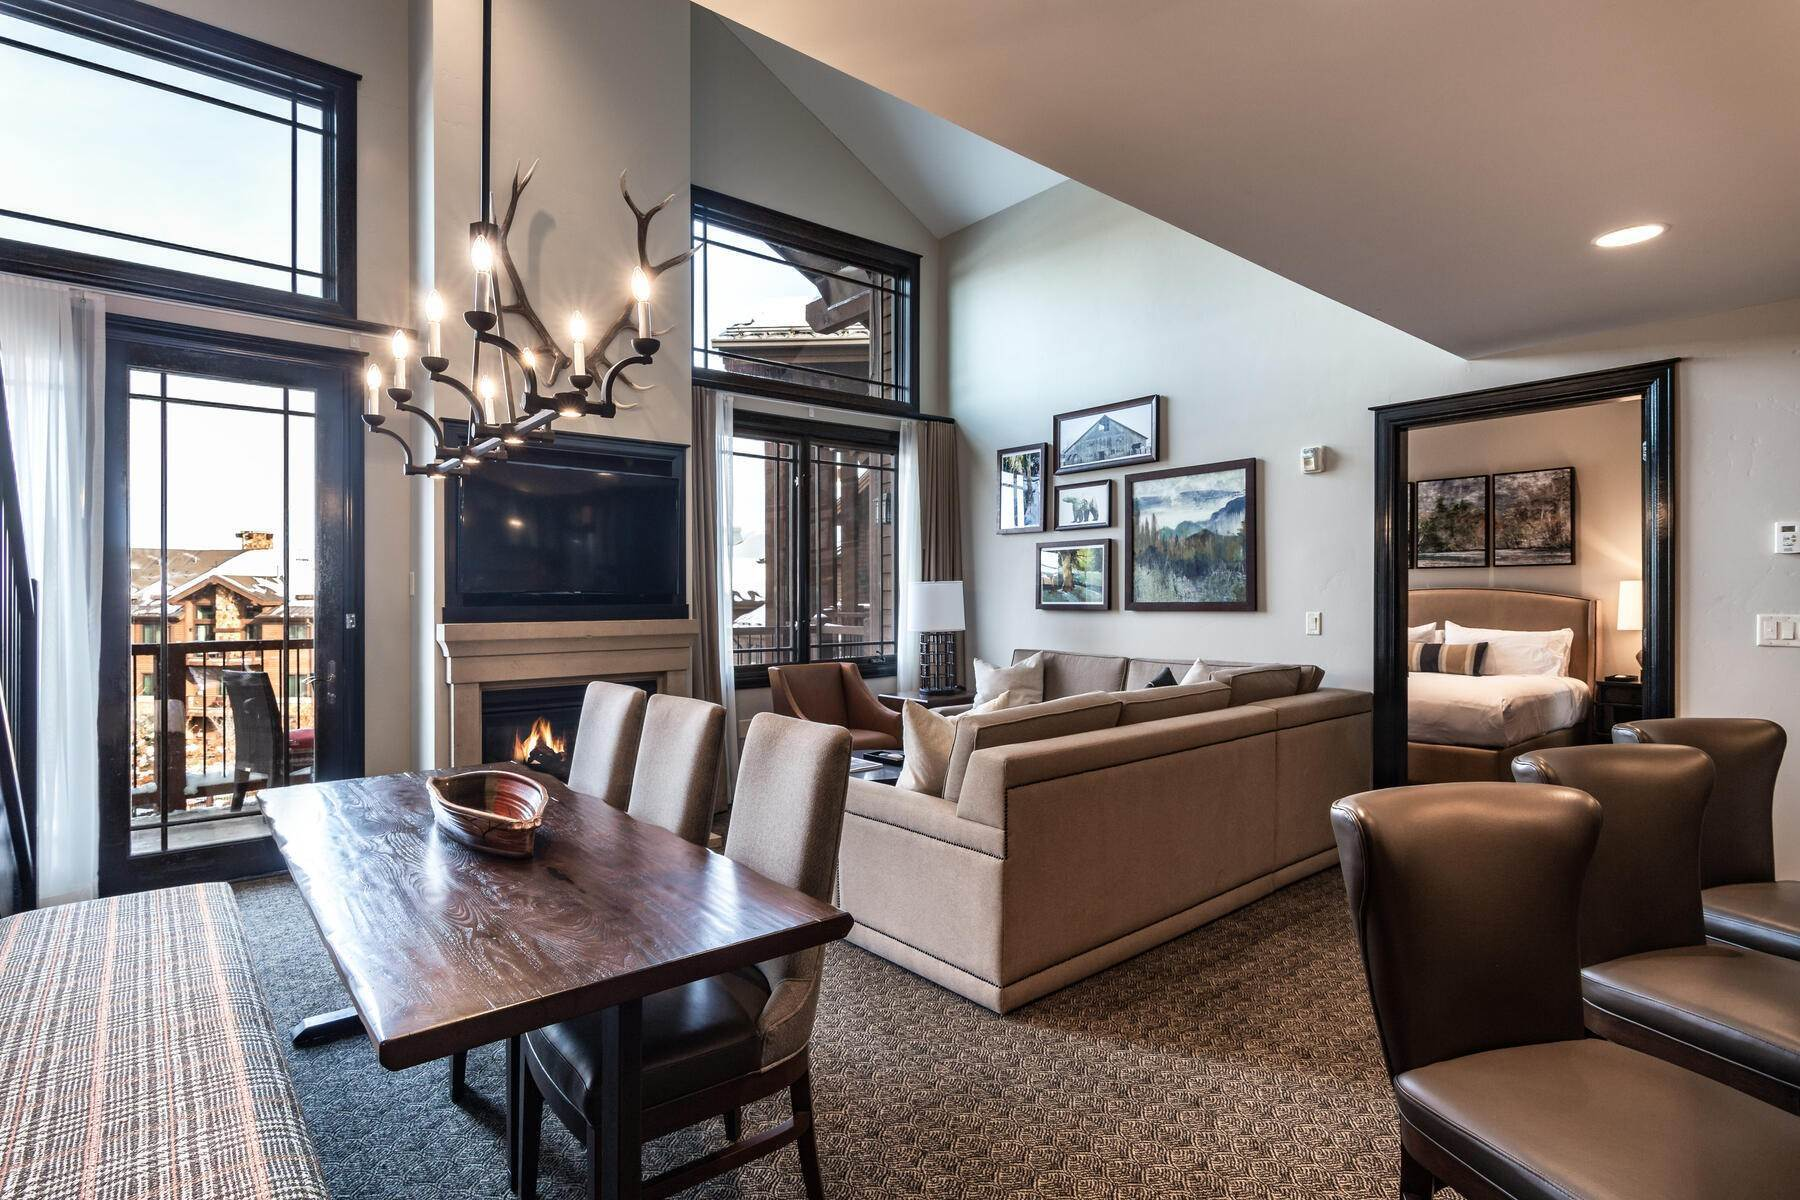 Condominiums for Sale at Only 4-Bedroom Available at Waldorf Astoria, Top Floor, Penthouse Unit 2100 W Frostwood Blvd, #7117 Park City, Utah 84098 United States